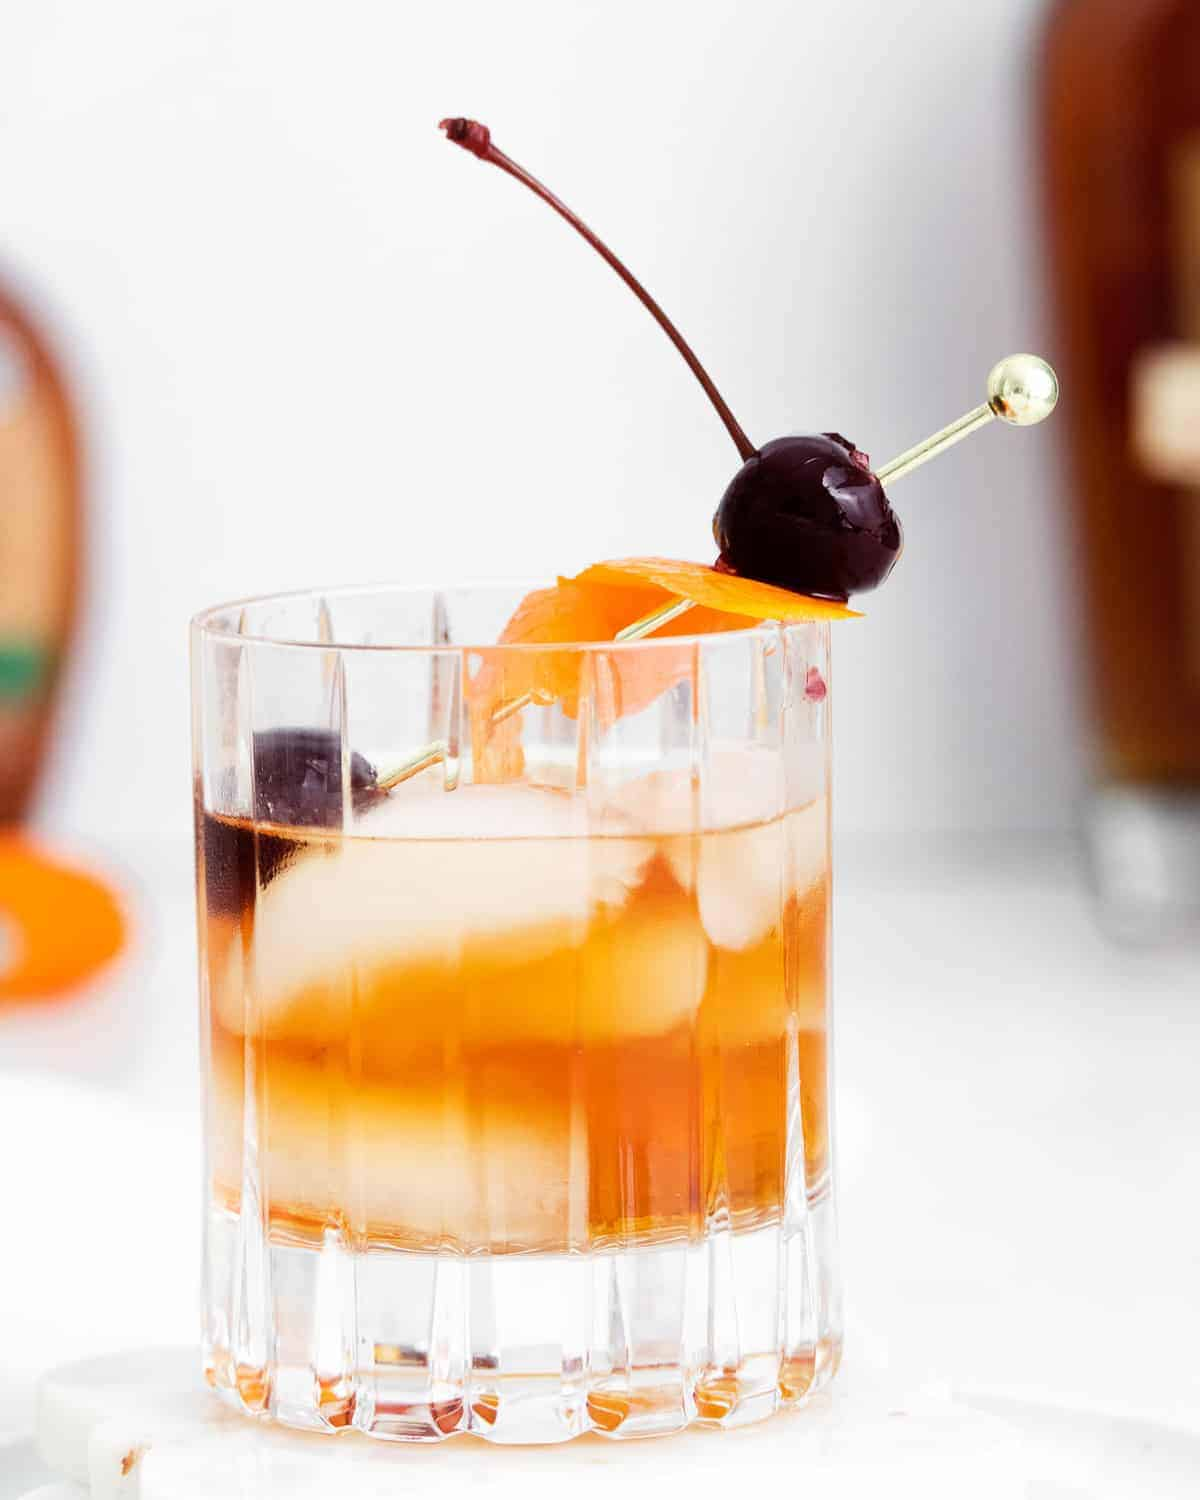 Short cocktail glass with ice, orange peel, cherry, and whiskey.